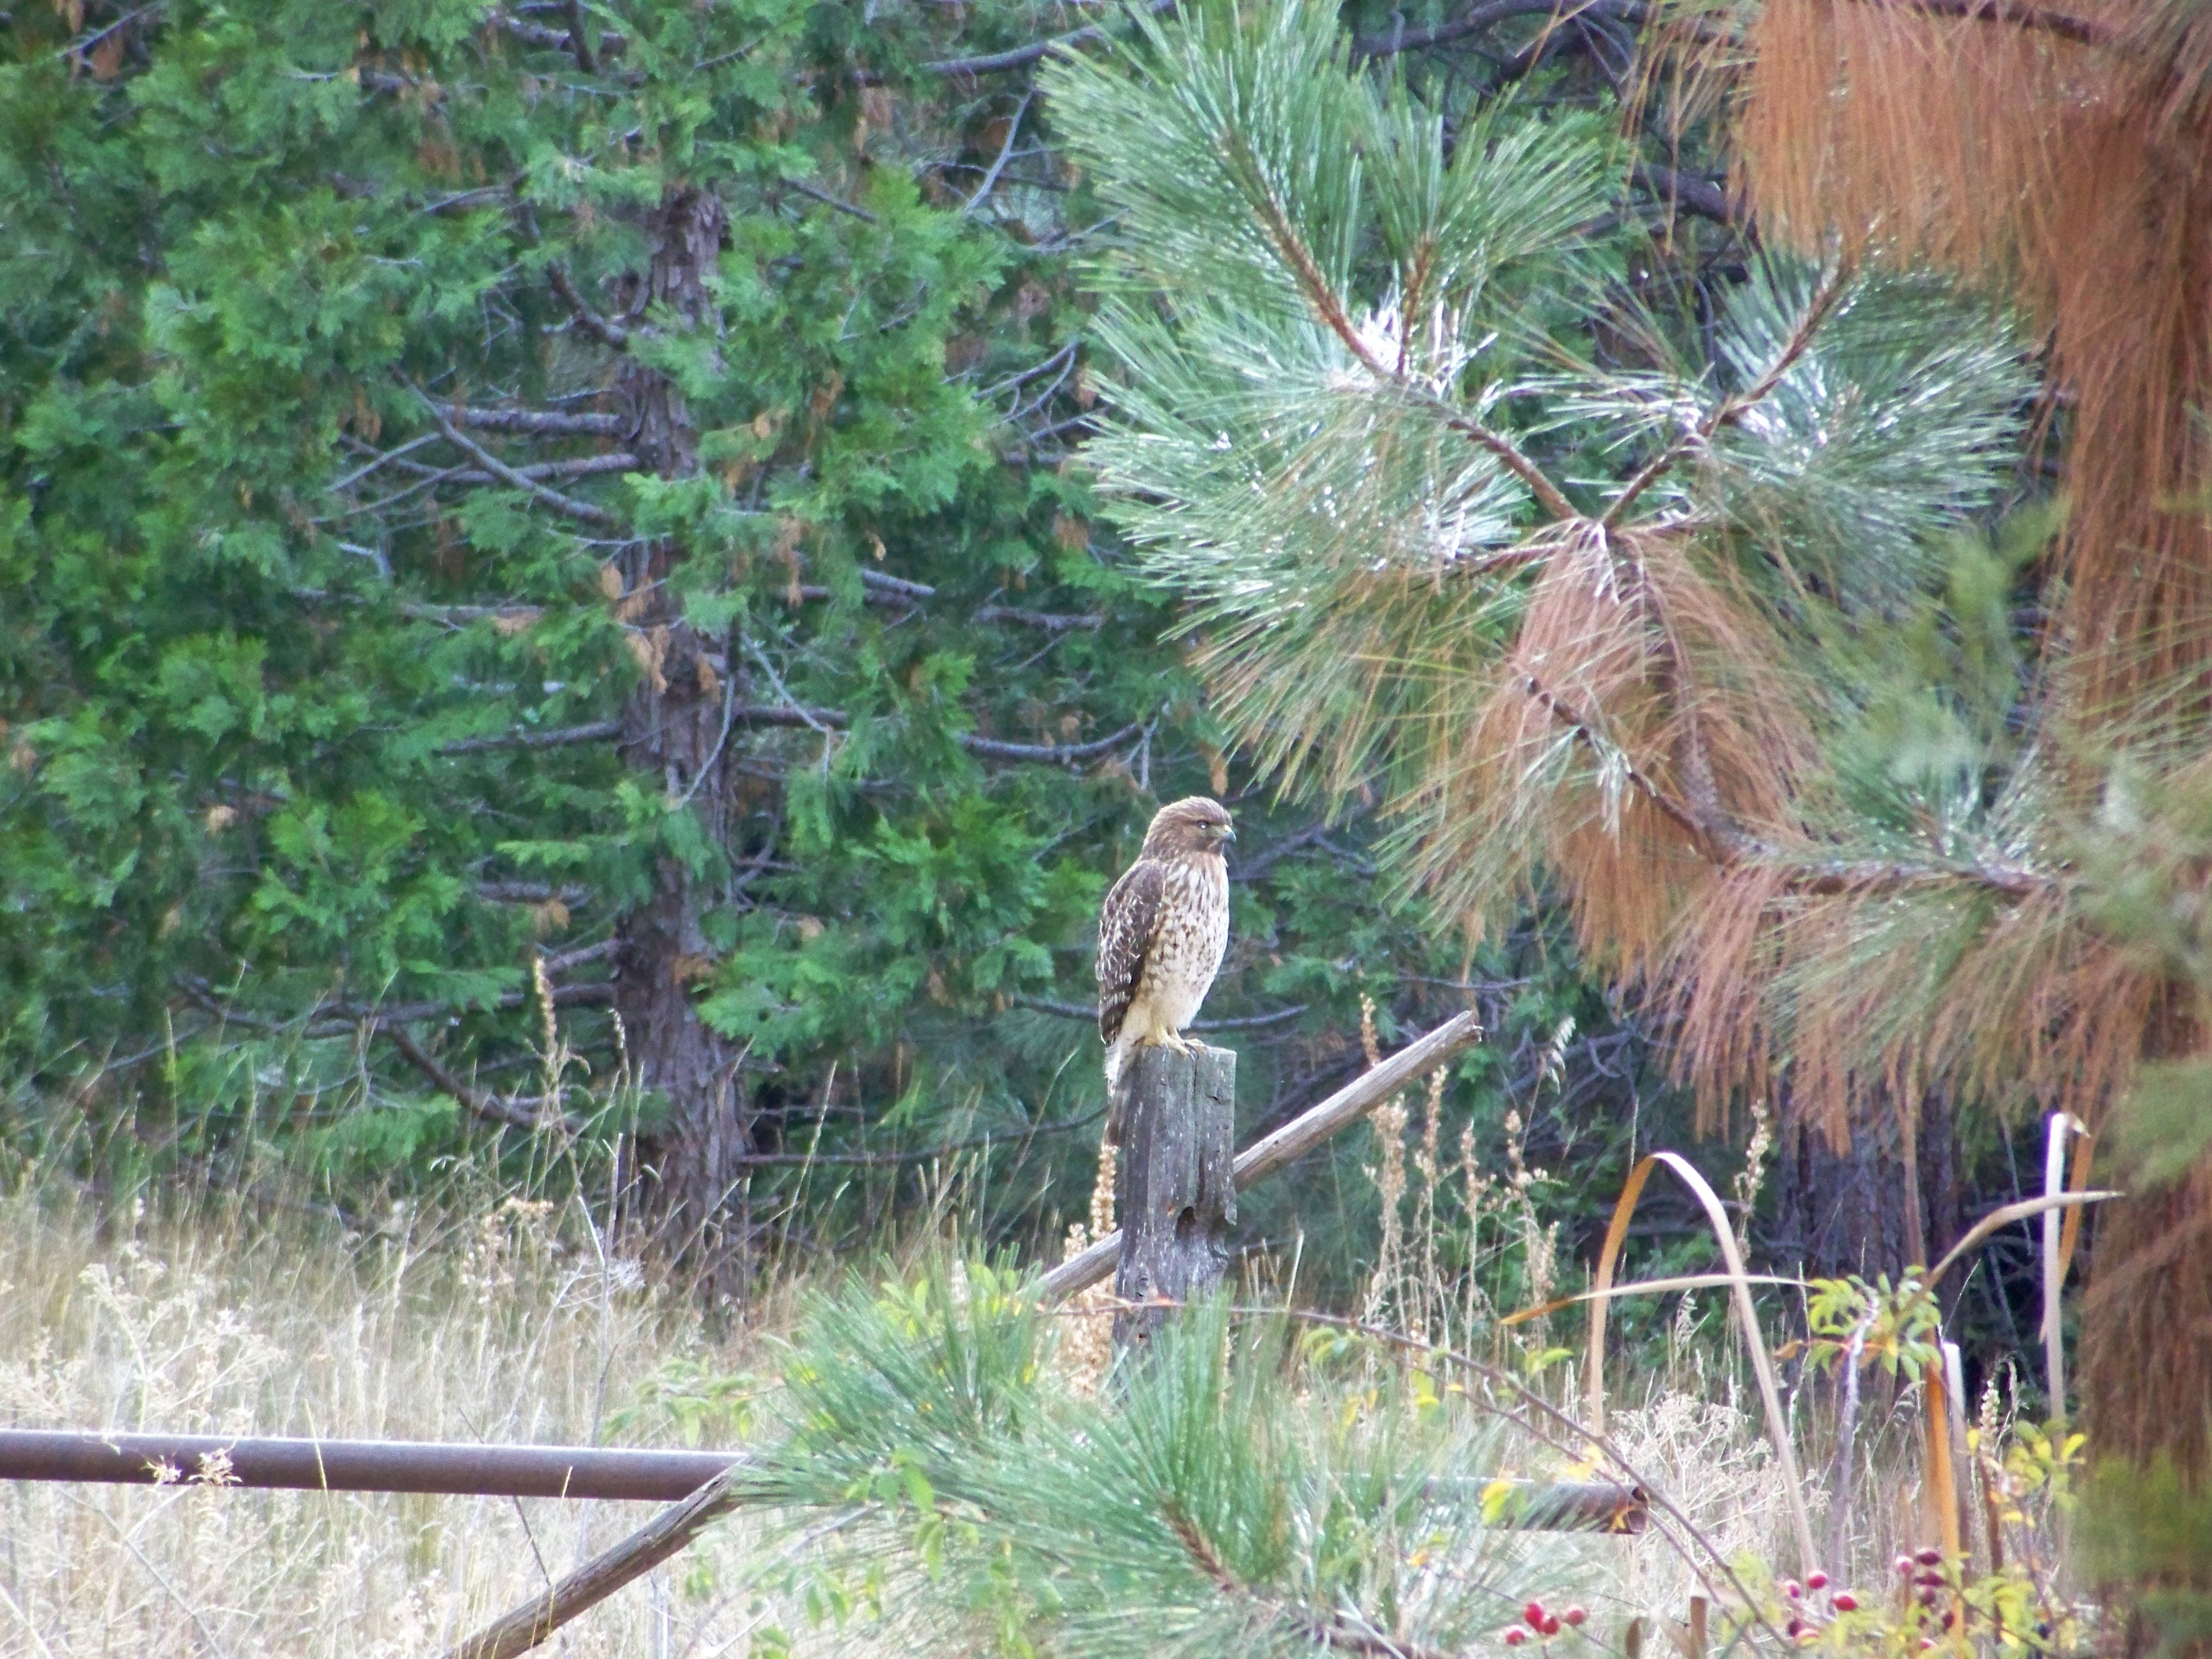 Sharp-Shinned Hawk in Meadow